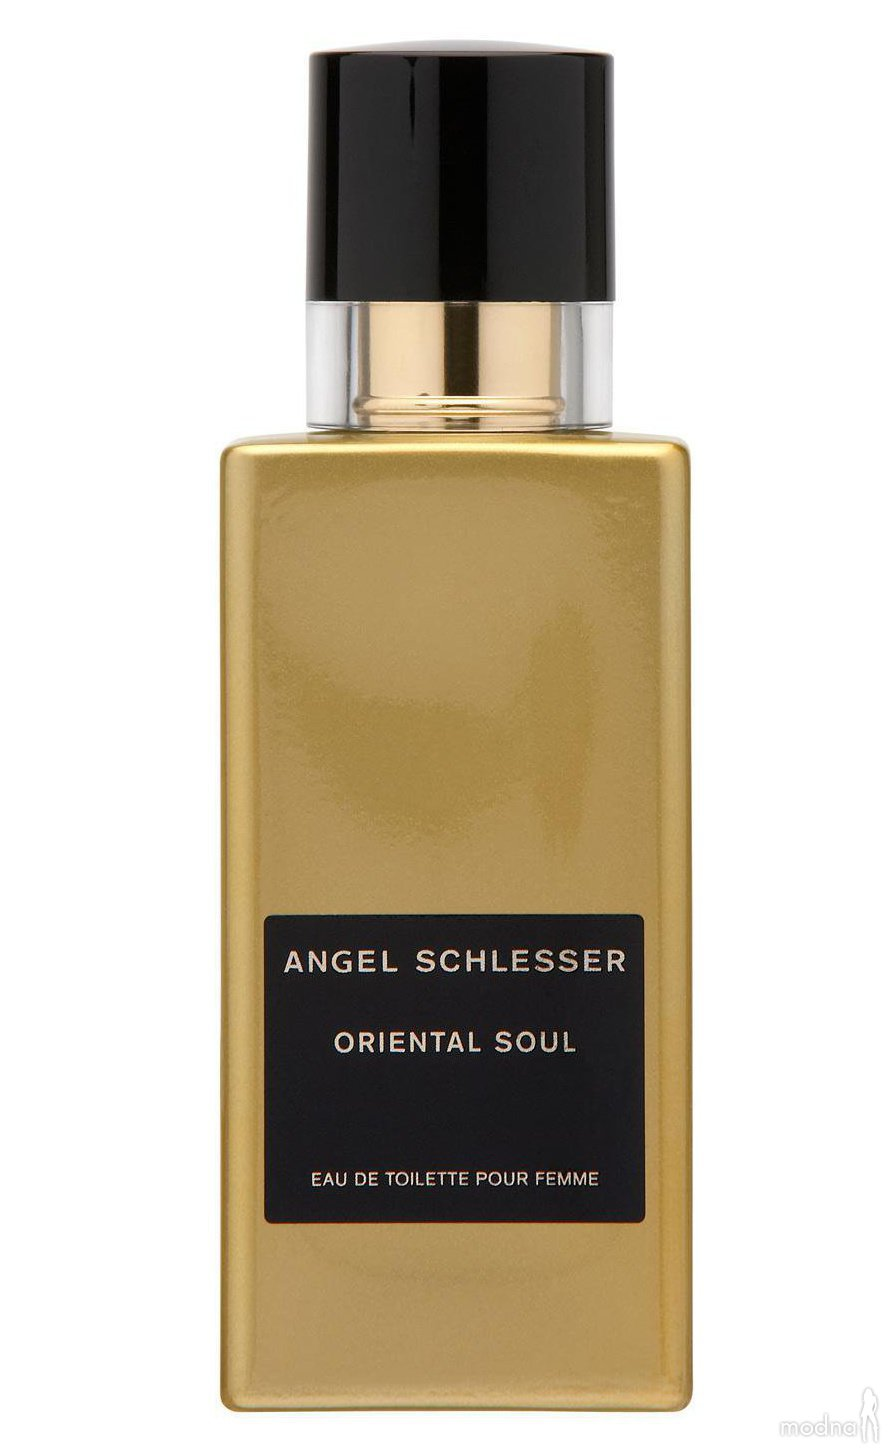 фото Angel Schlesser Oriental Soul edt 100ml TESTER